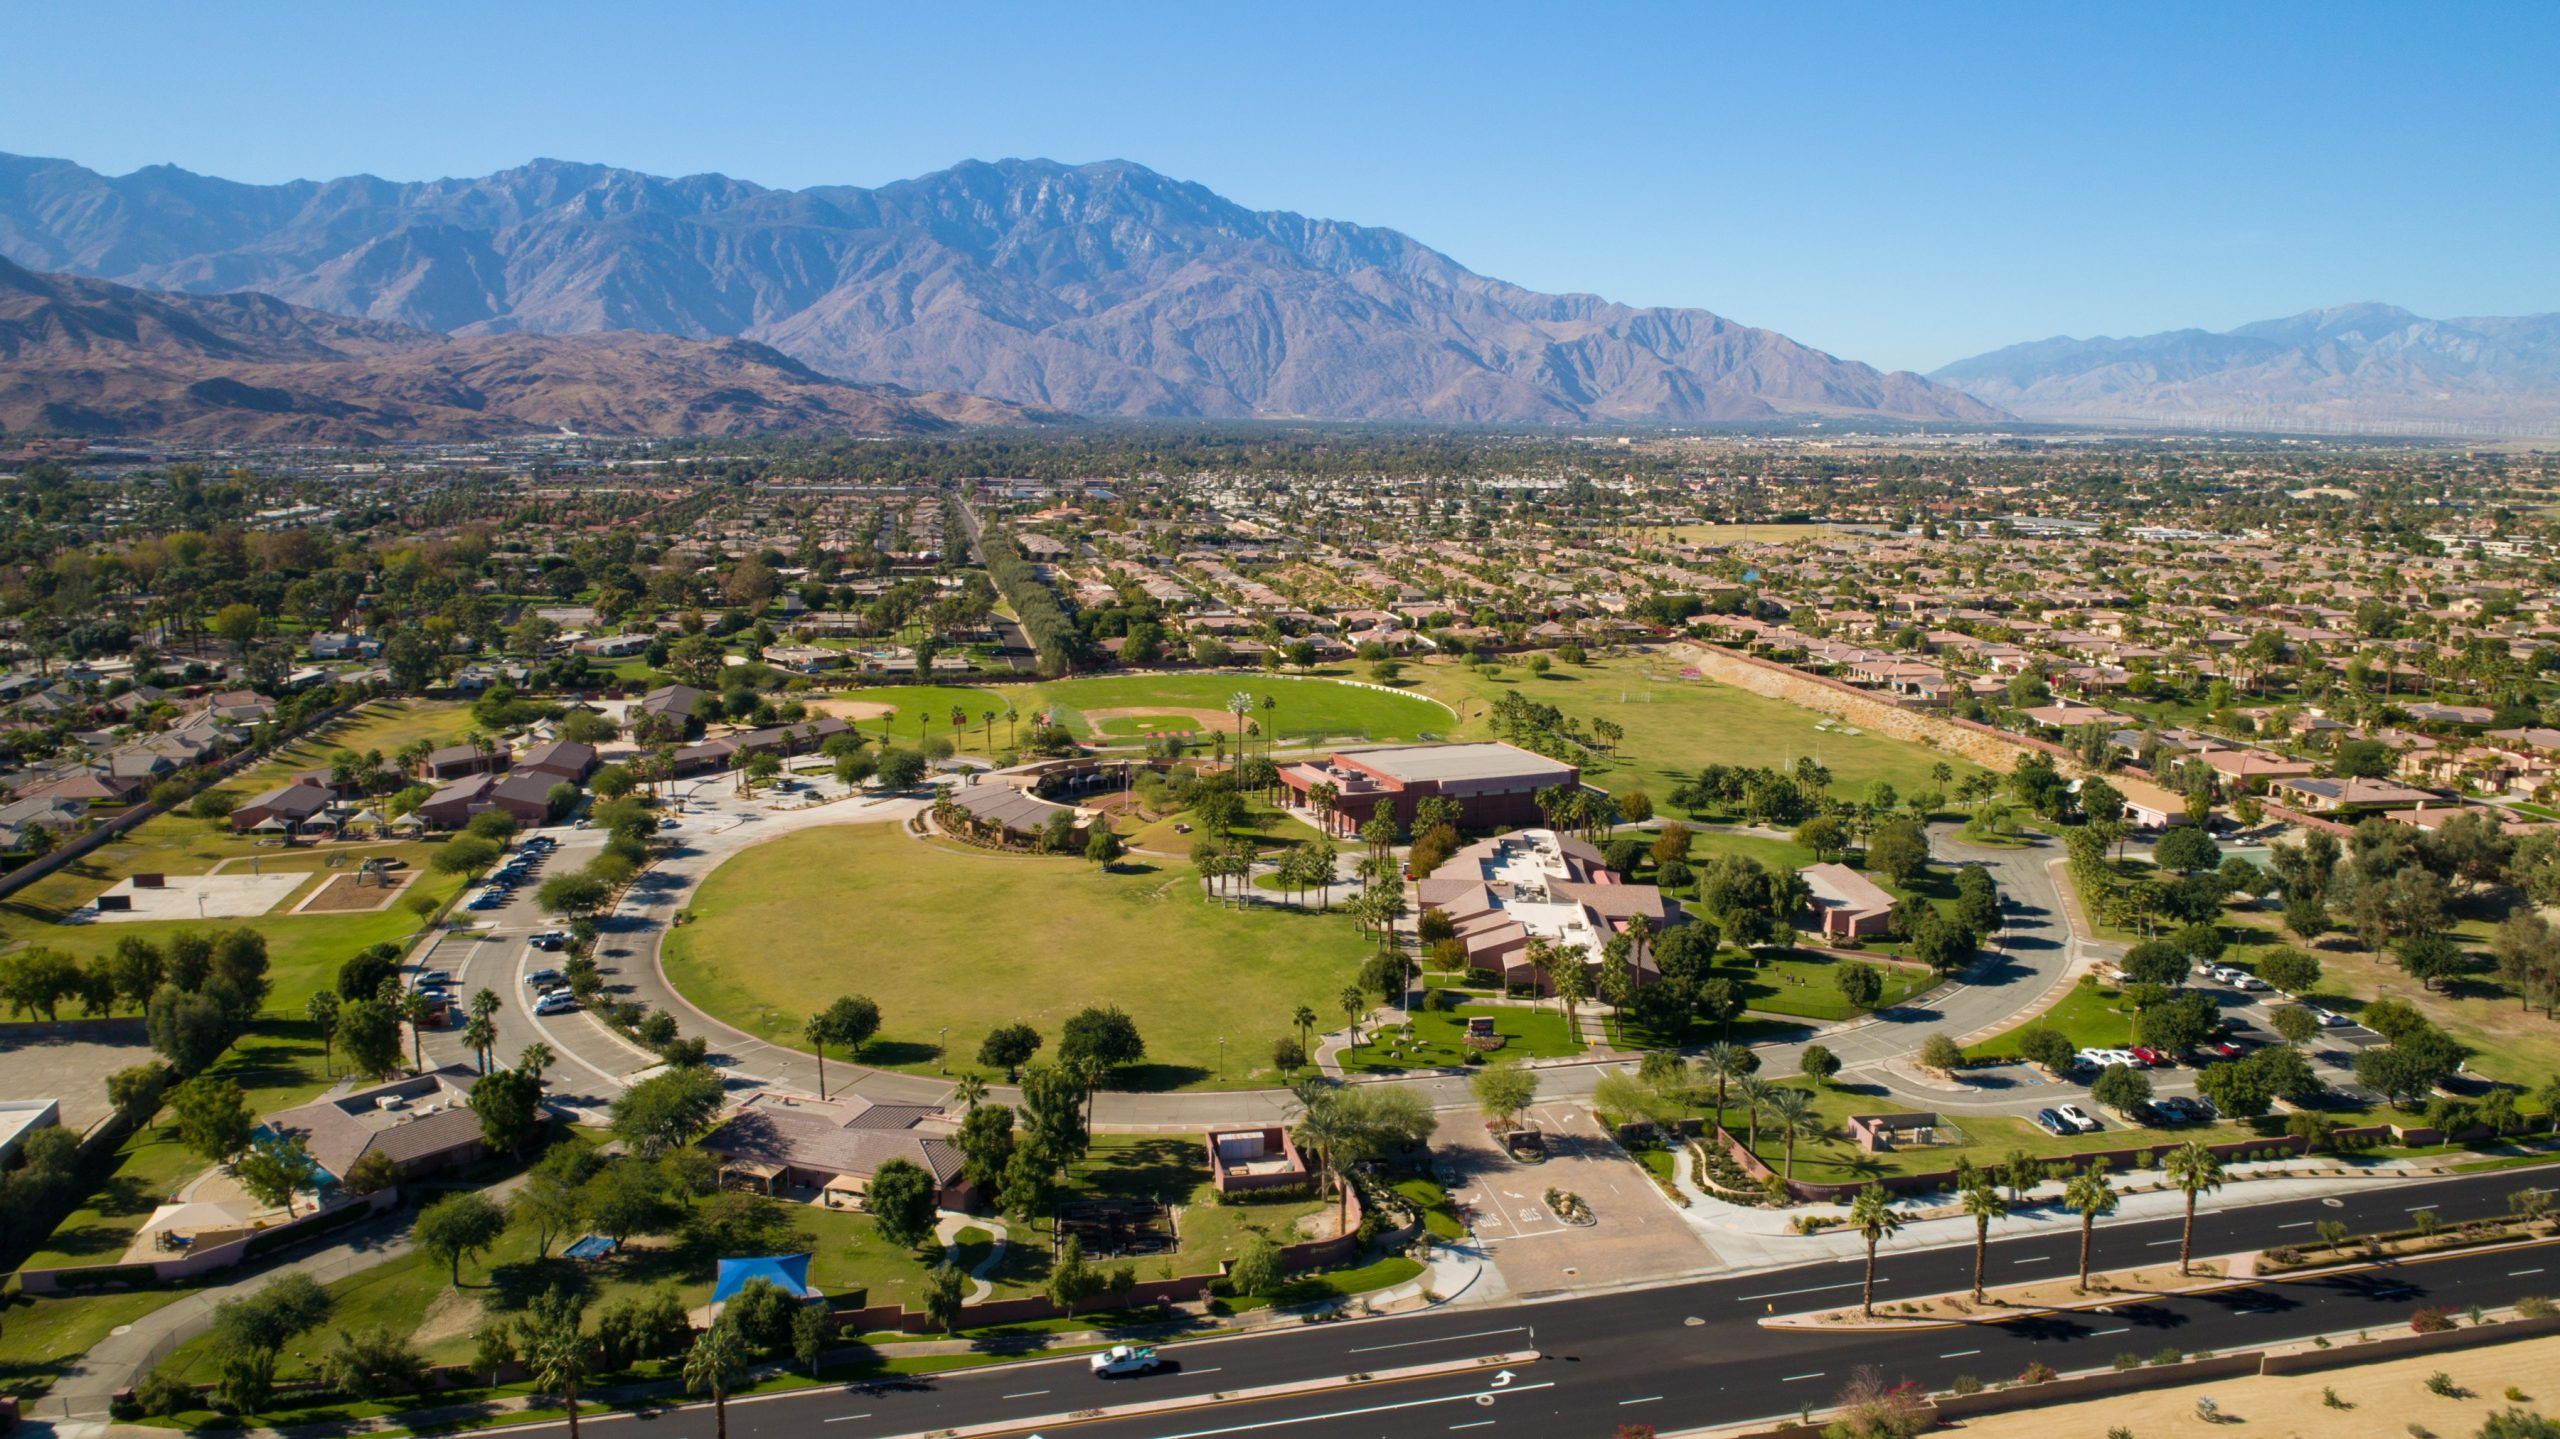 aerial photo of palm valley school. It is surrounded by mountains and clear blue skies.